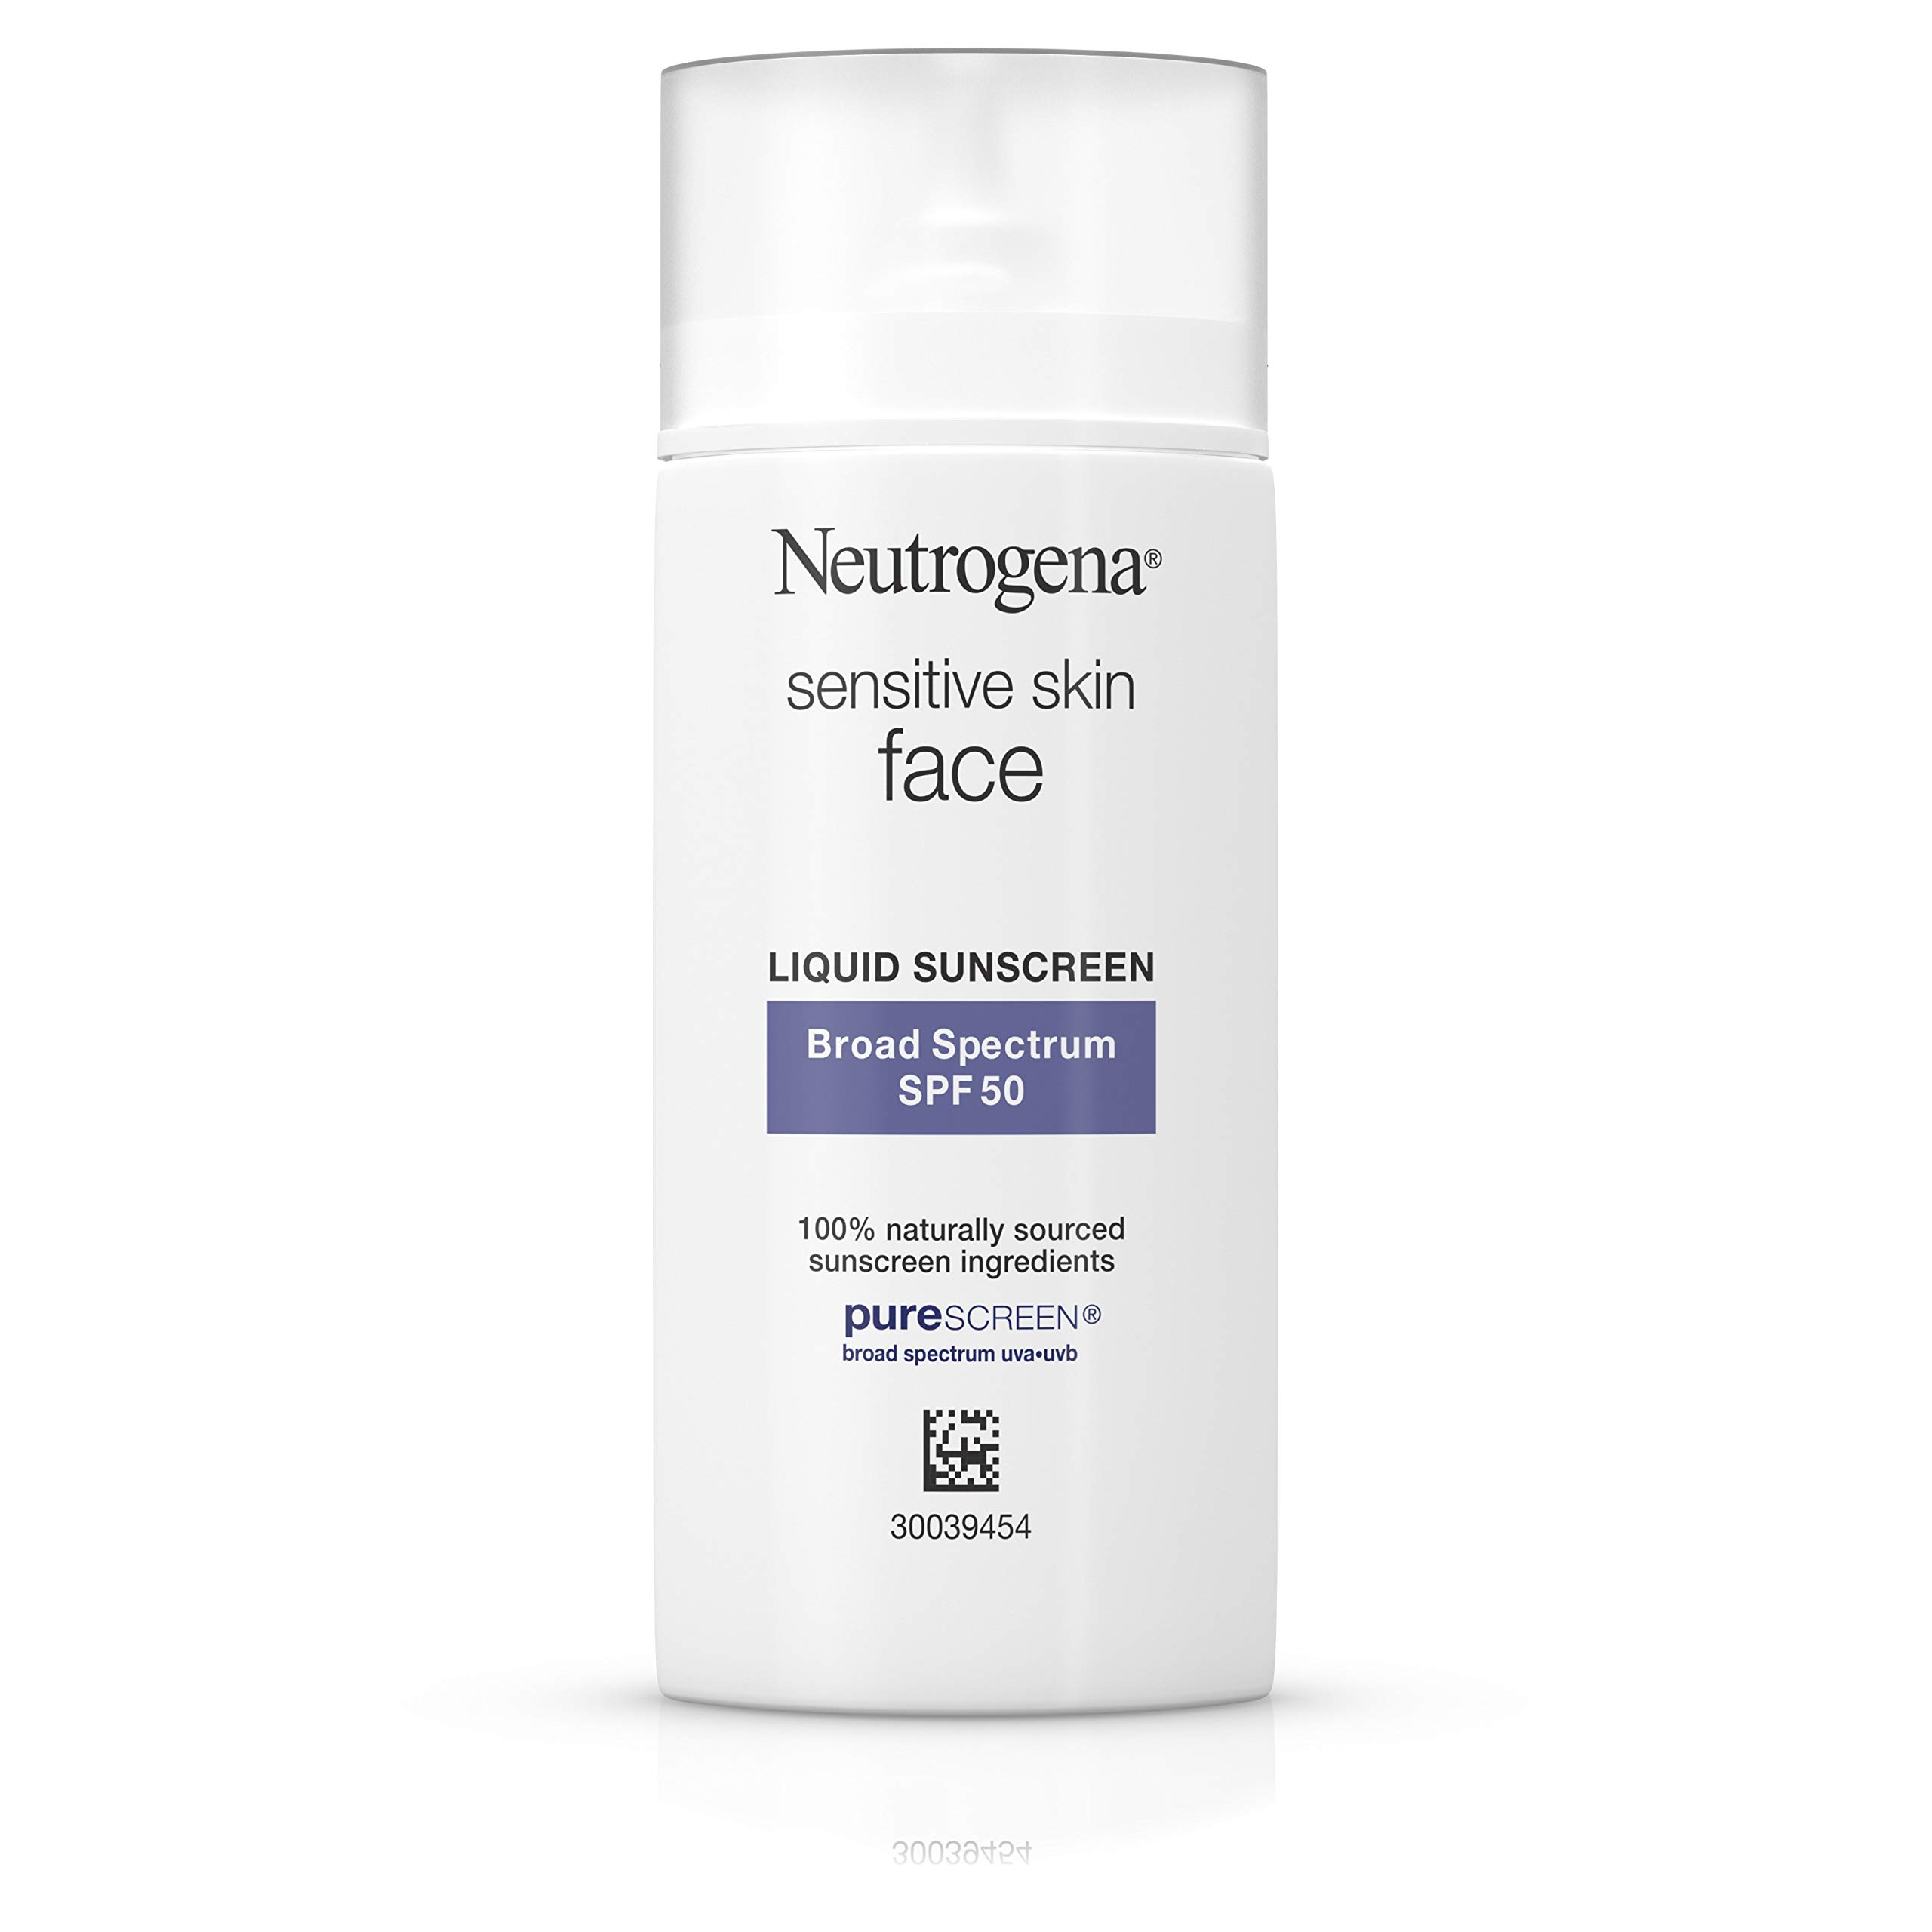 Neutrogena Face Sunscreen for Sensitive Skin from Naturally Sourced Ingredients with Zinc Oxide, Broad Spectrum SPF 50, 1.4 fl. Oz by Neutrogena